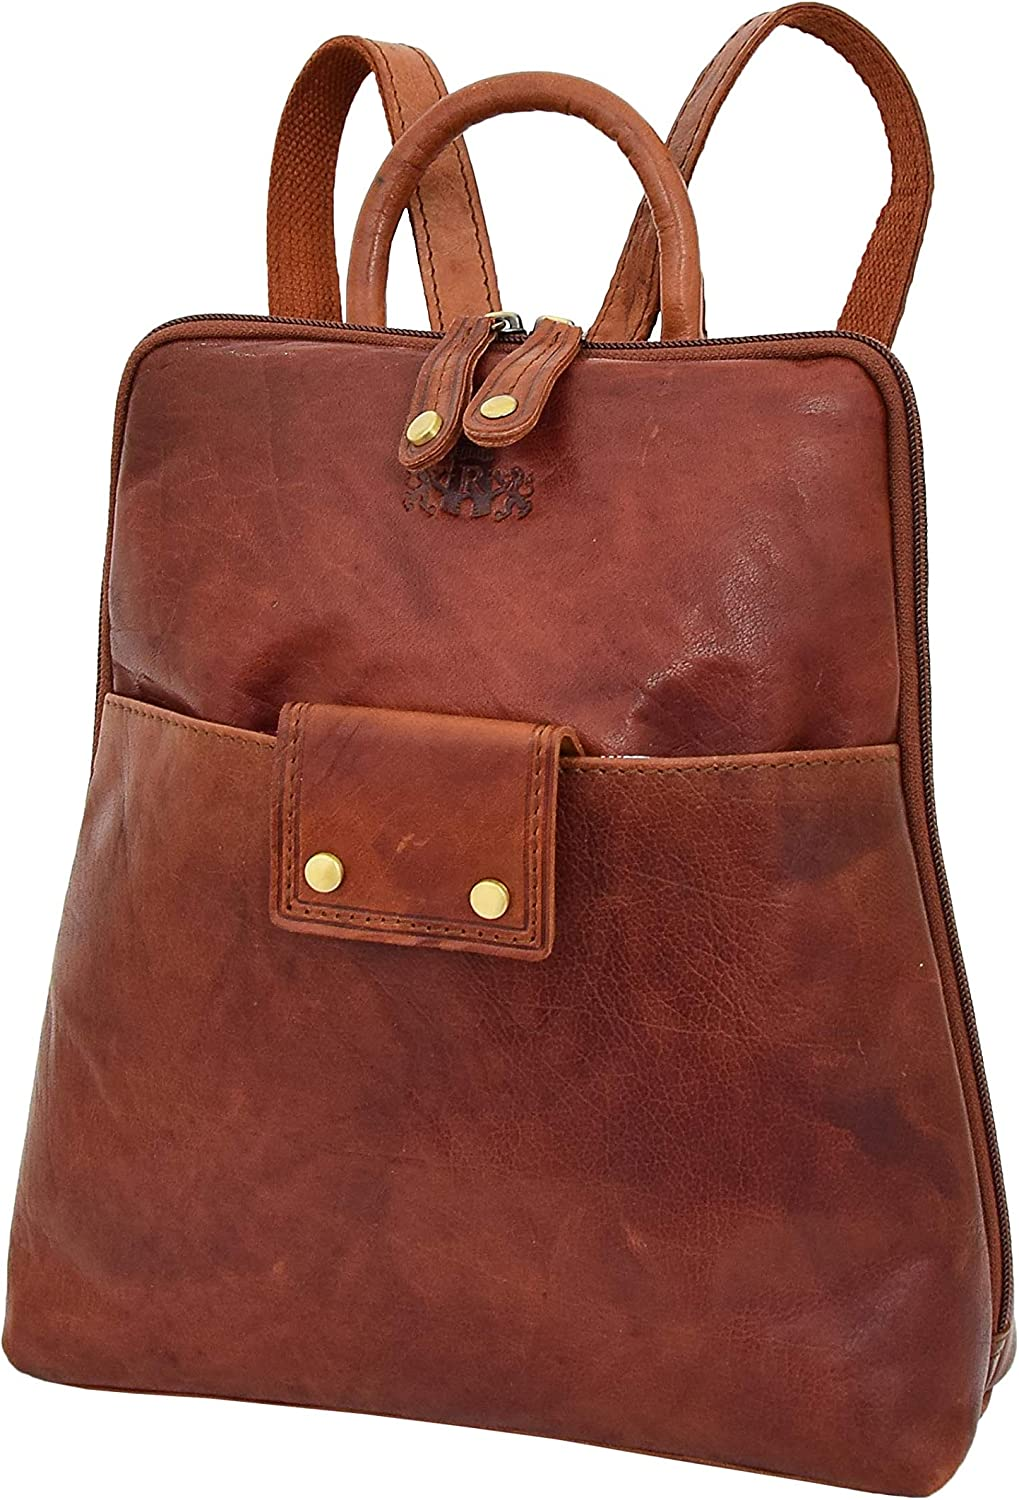 A1 FASHION GOODS Womens Backpack Cognac Leather Rucksack Casual Travel Office Organiser Bag - Evie